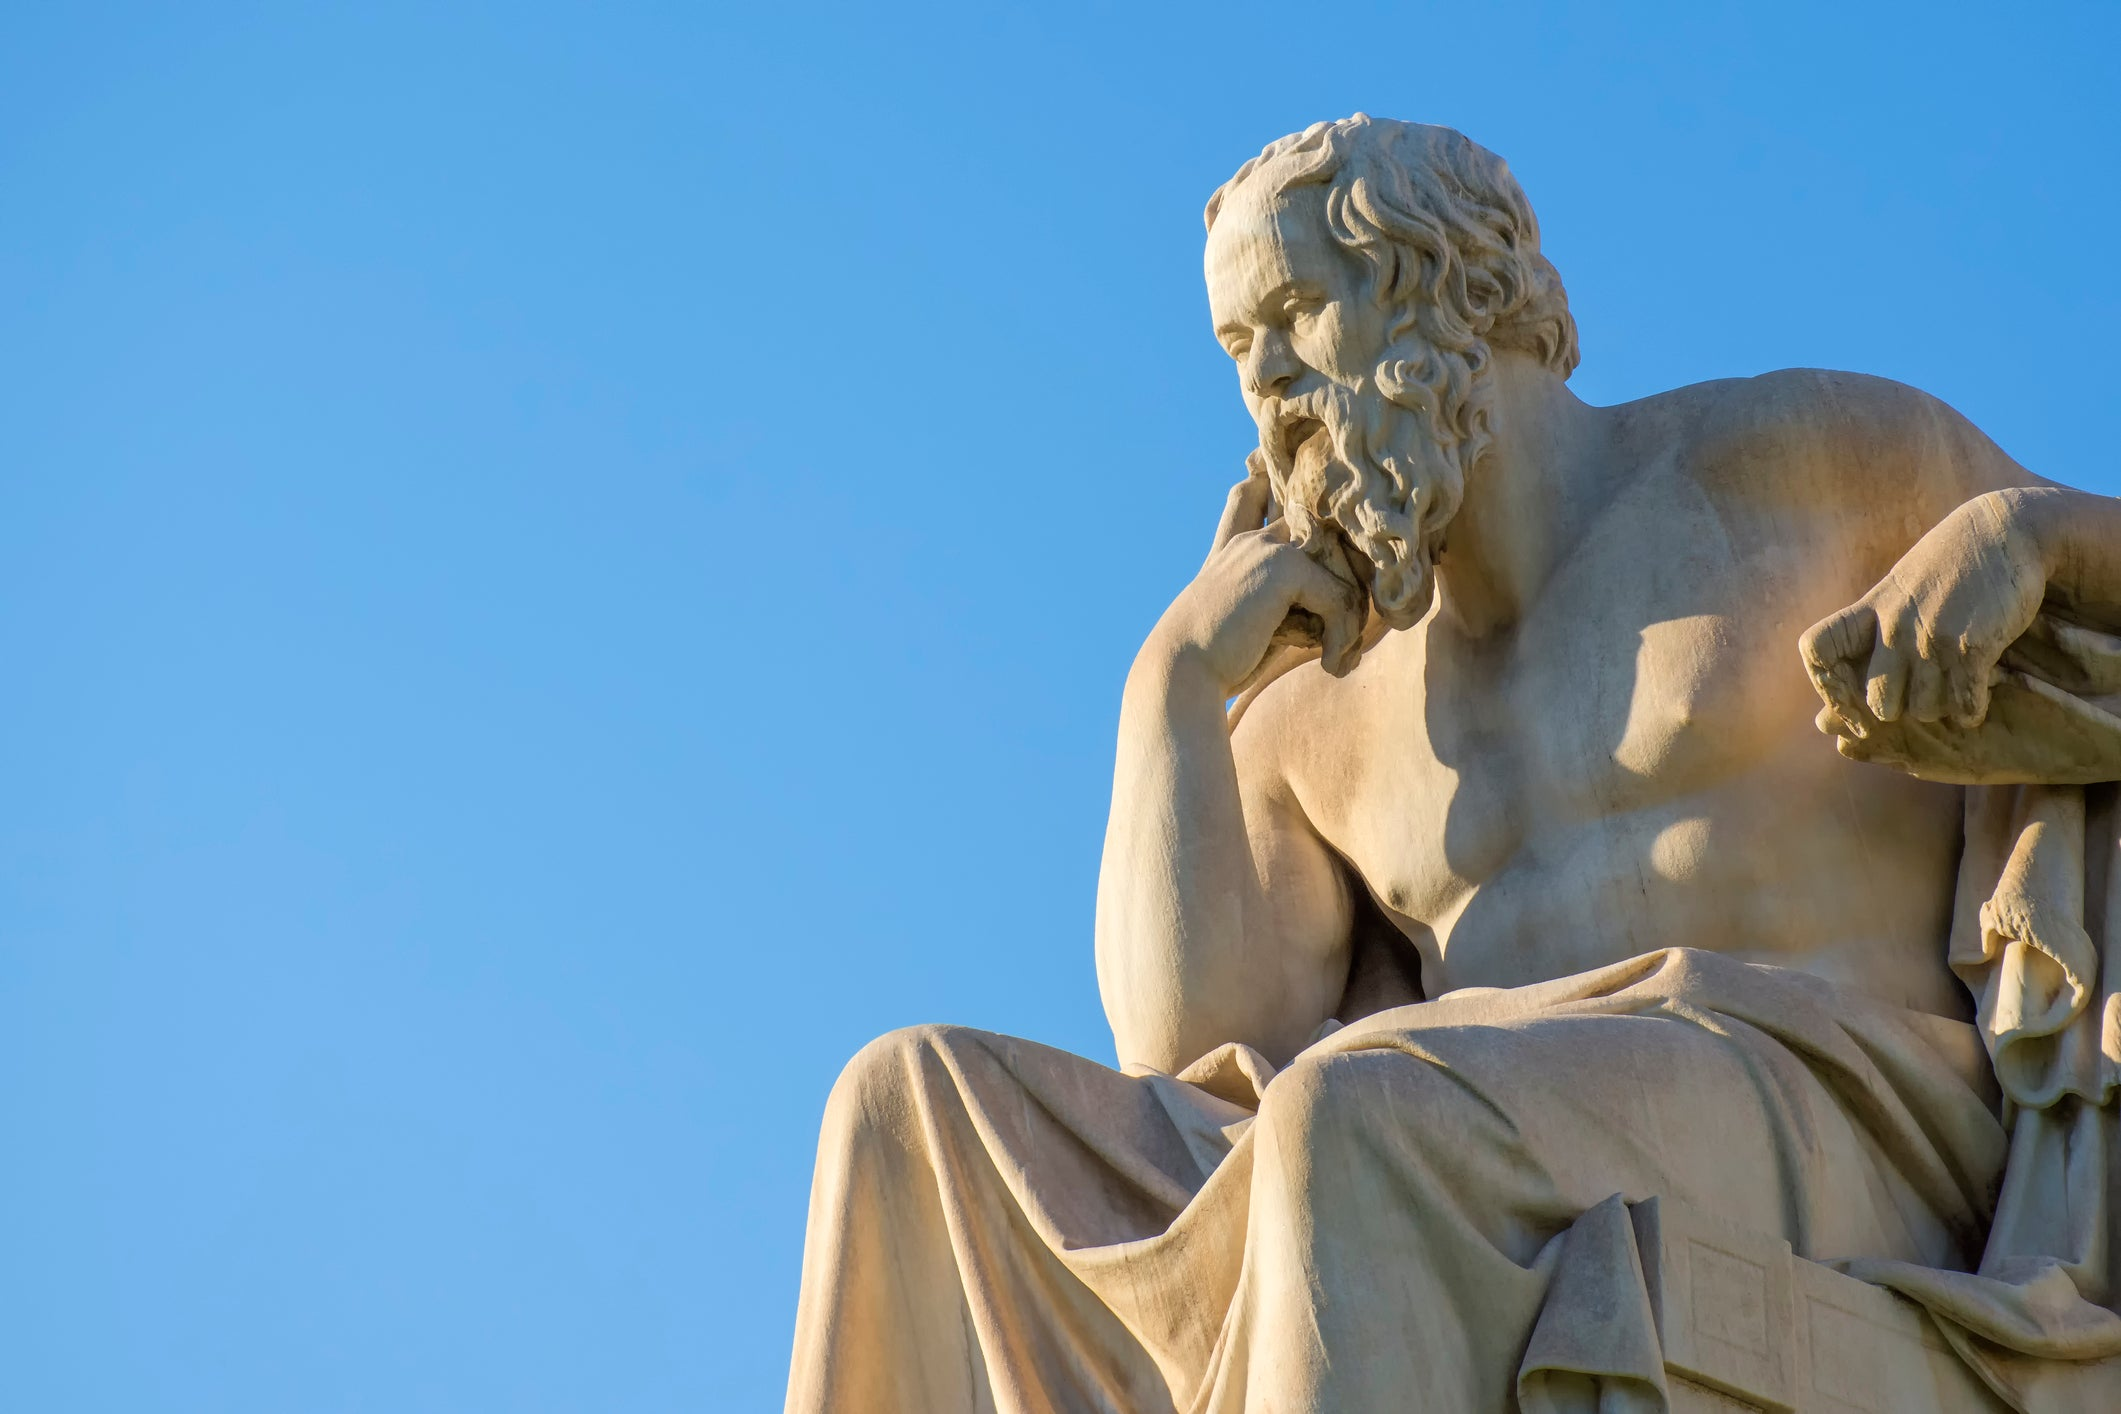 7 Lessons From Socrates on Wisdom, Wealth, and the Good ...